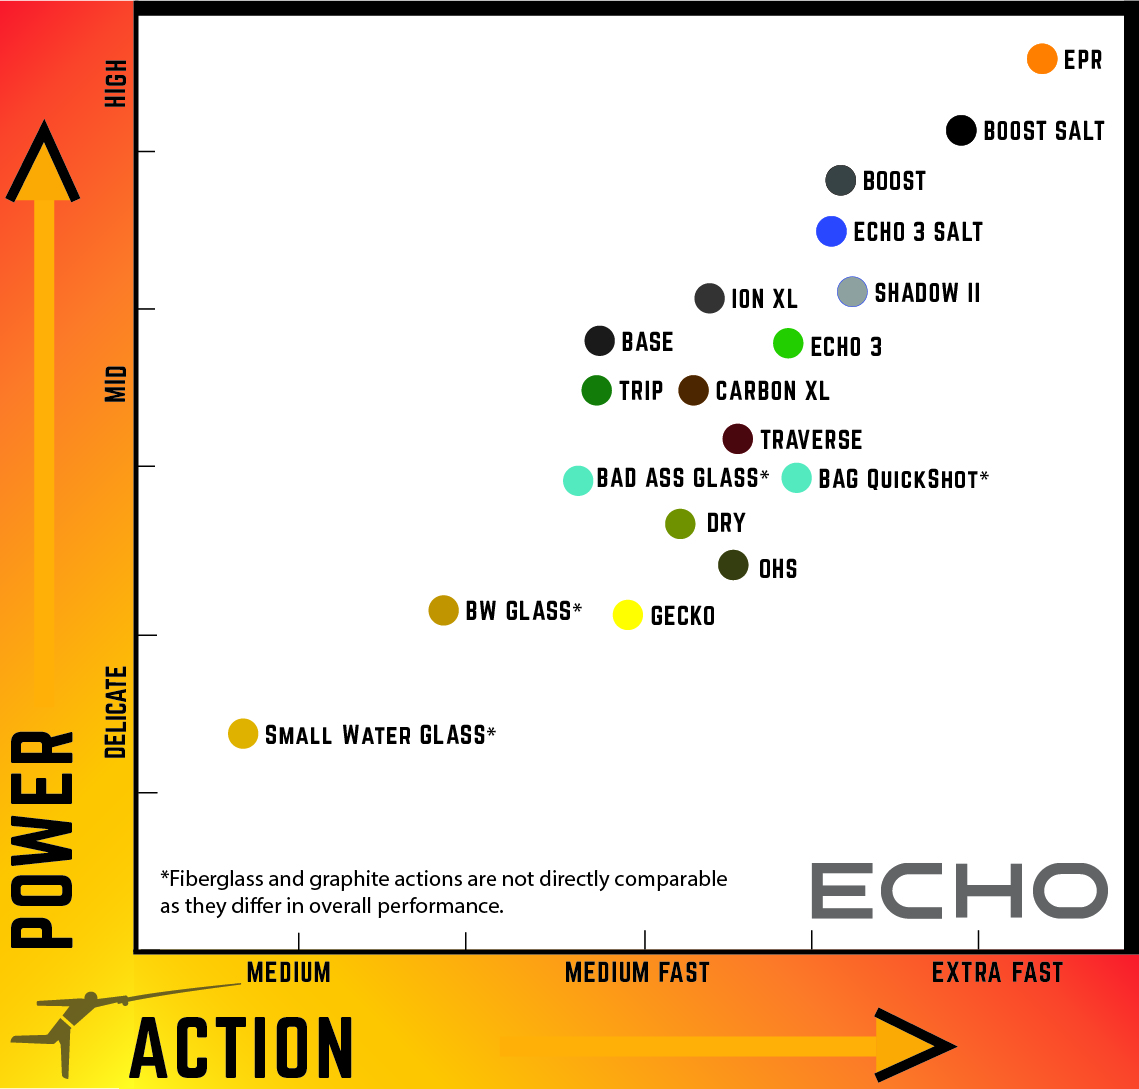 Ohs echo fly fishing action vs power comparison nvjuhfo Image collections